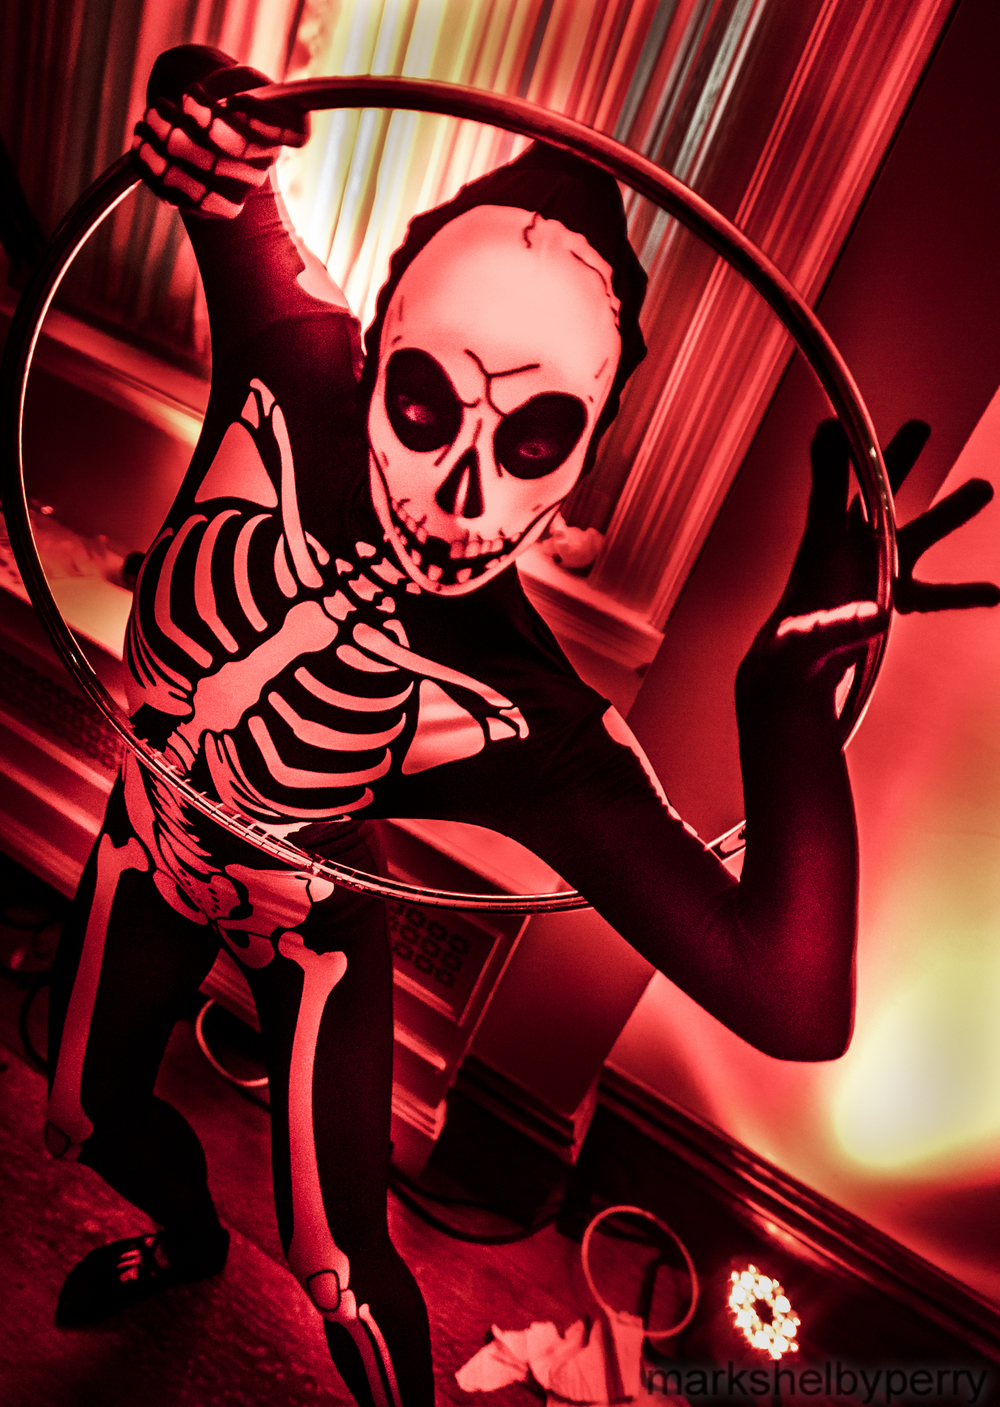 Skeleton Hula Hoopist